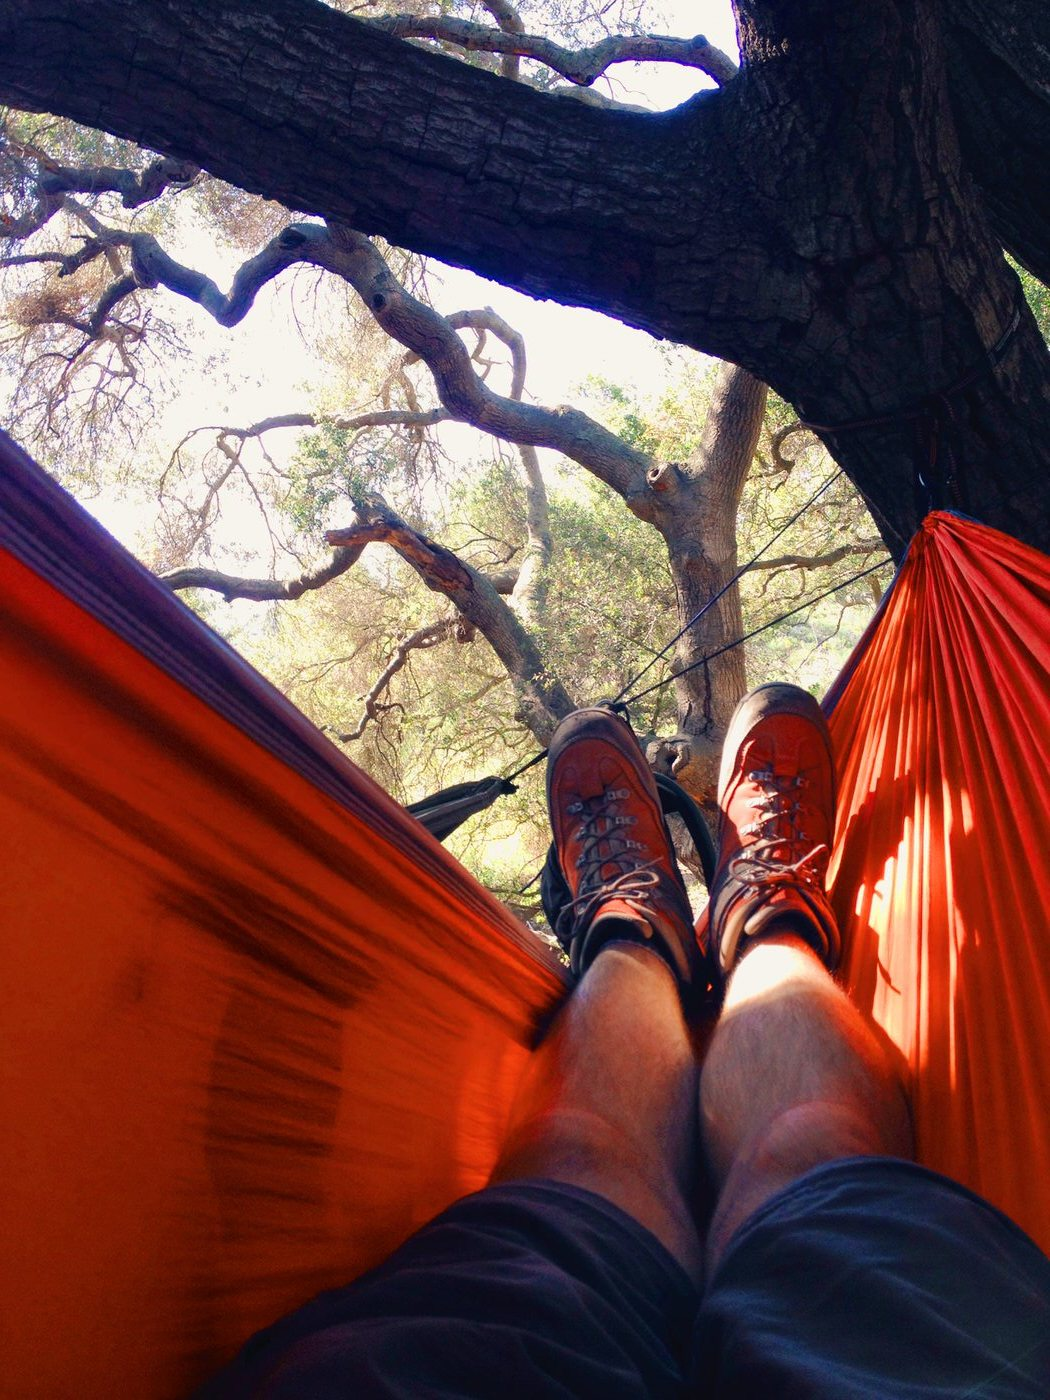 Hammock time after a hike